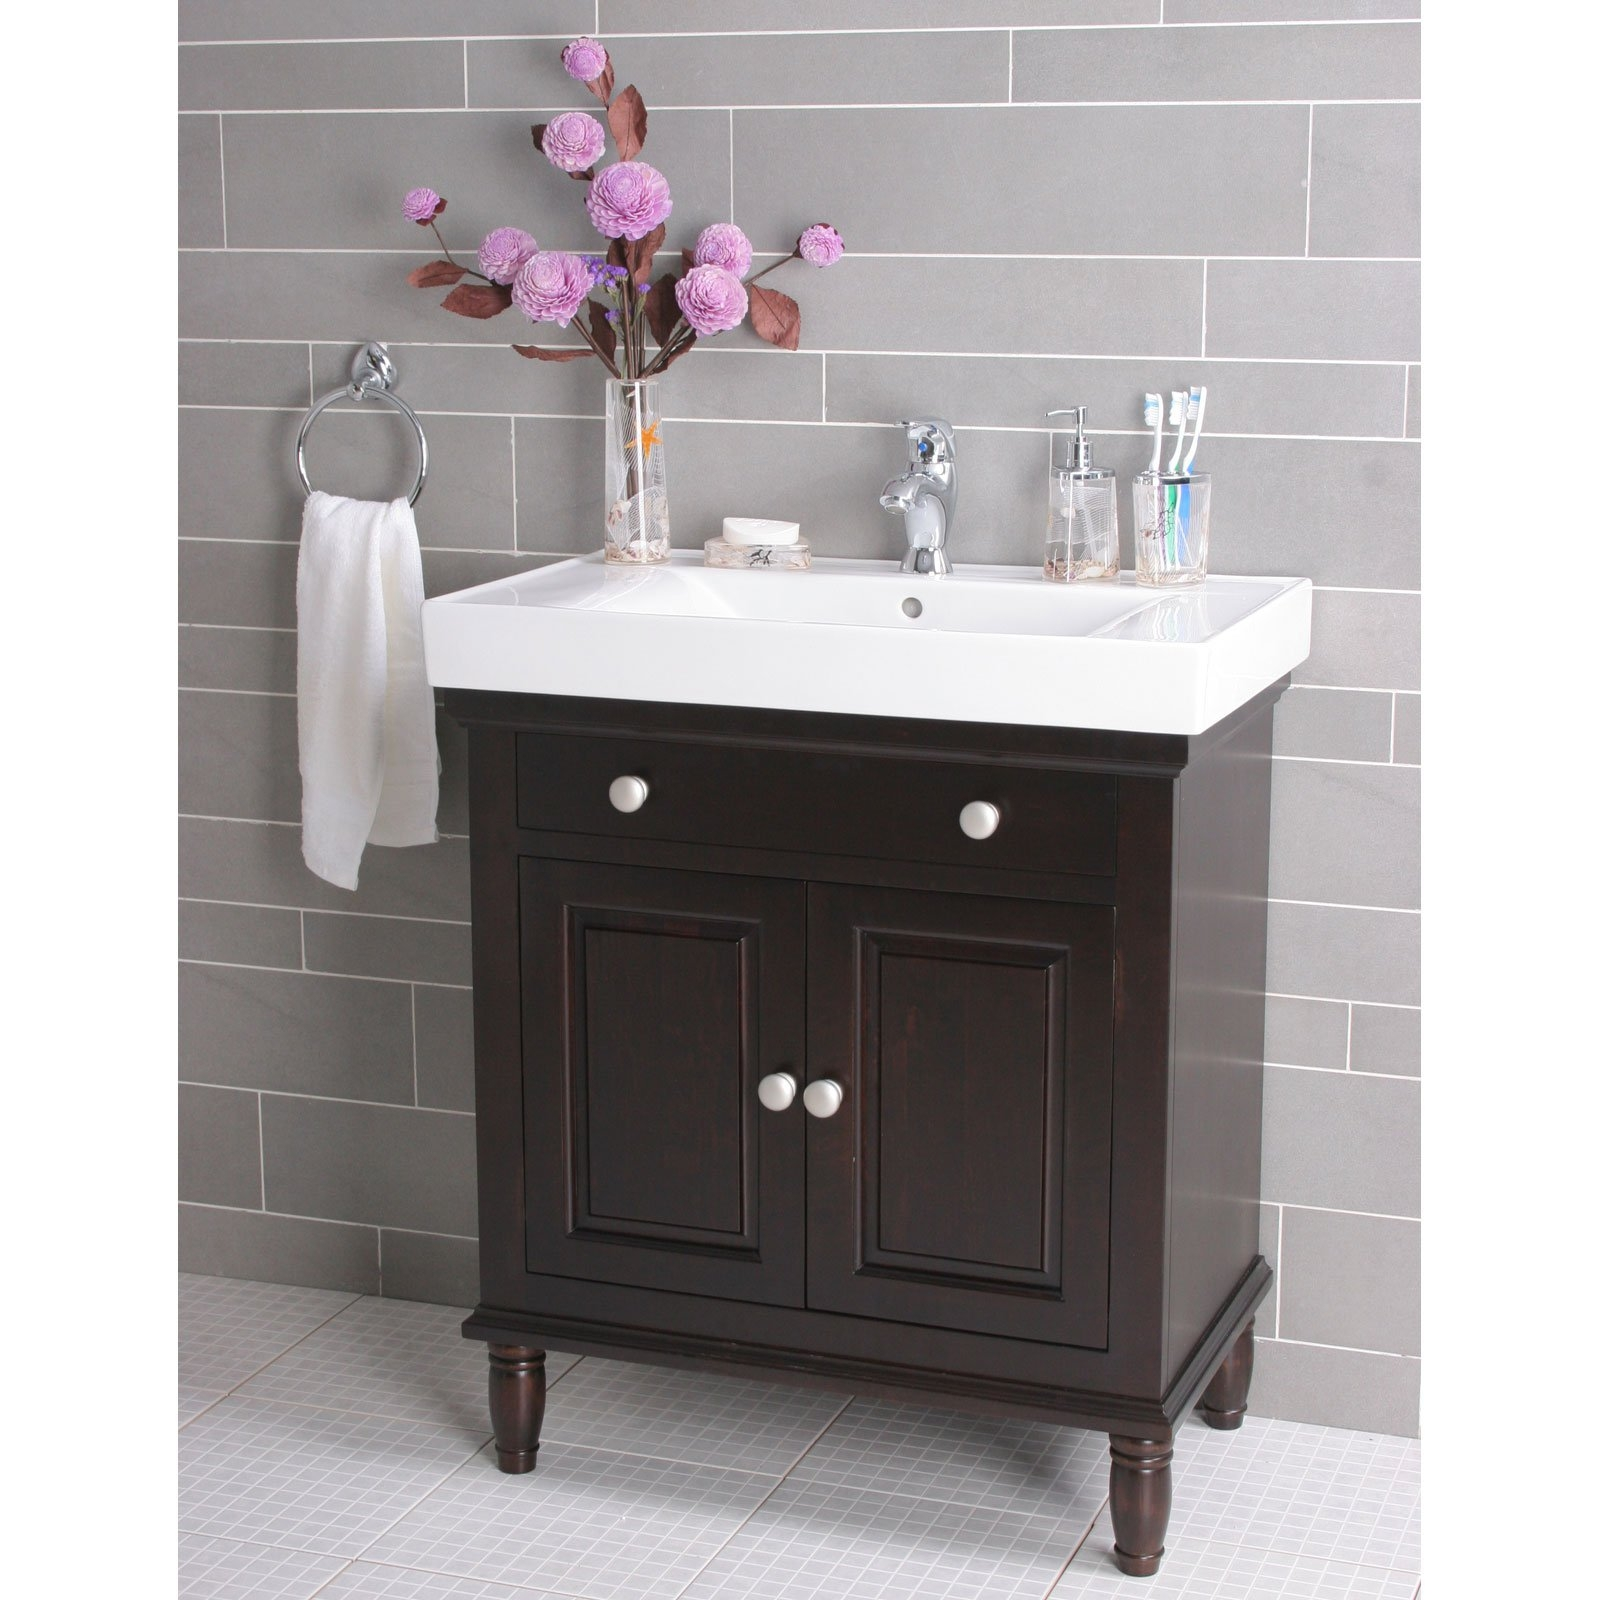 18 Depth Bathroom Vanity Cabinetnarrow bathroom sinks and cabinets creative bathroom decoration